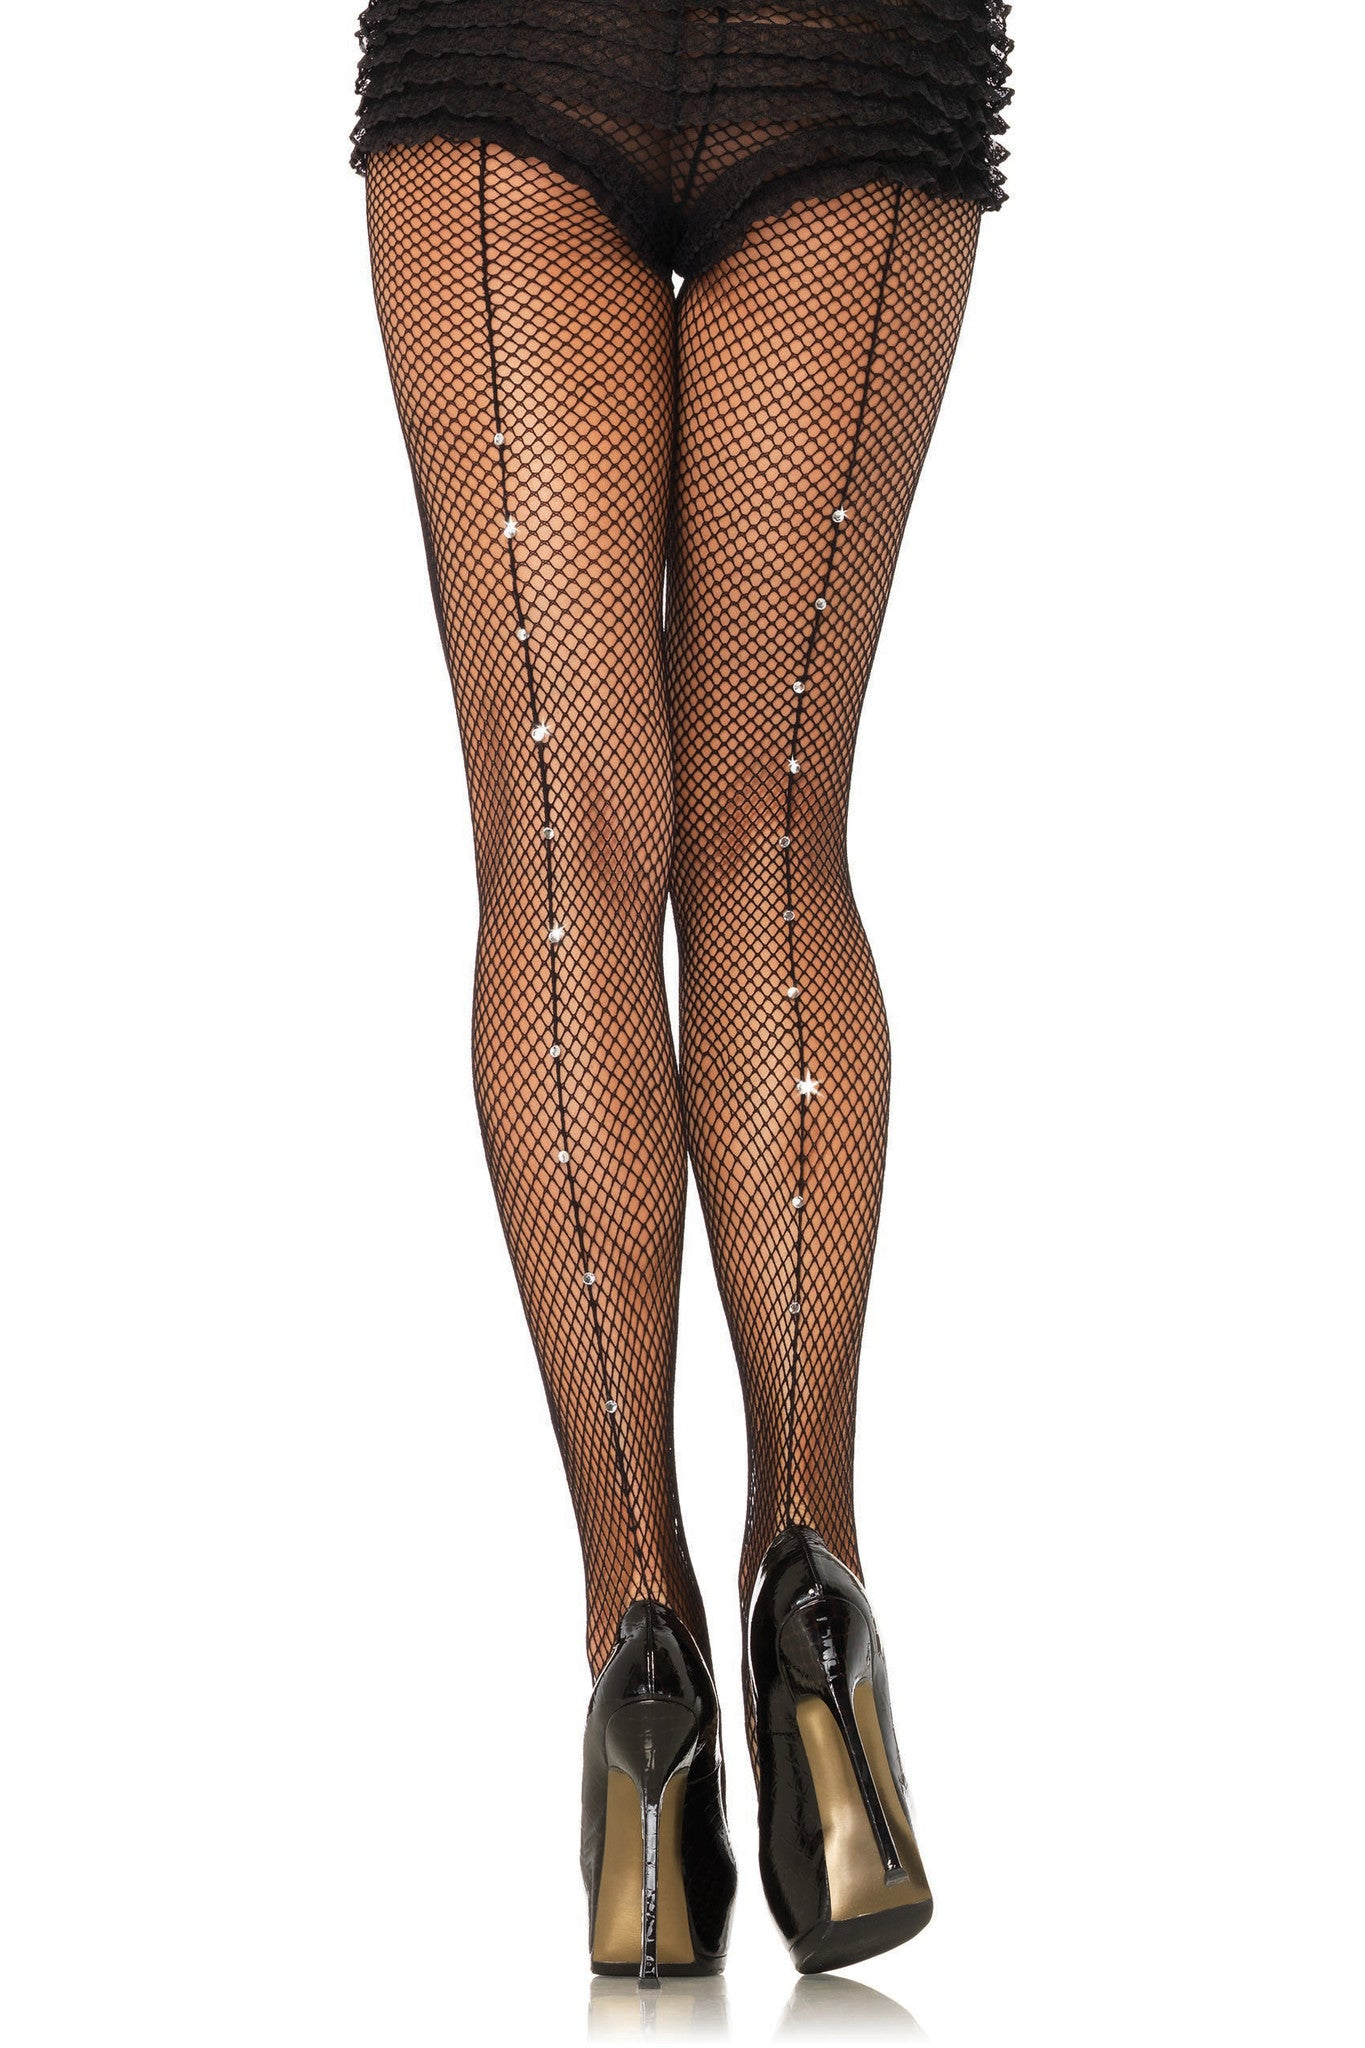 Rhinestone Seamed Fishnet Pantyhose